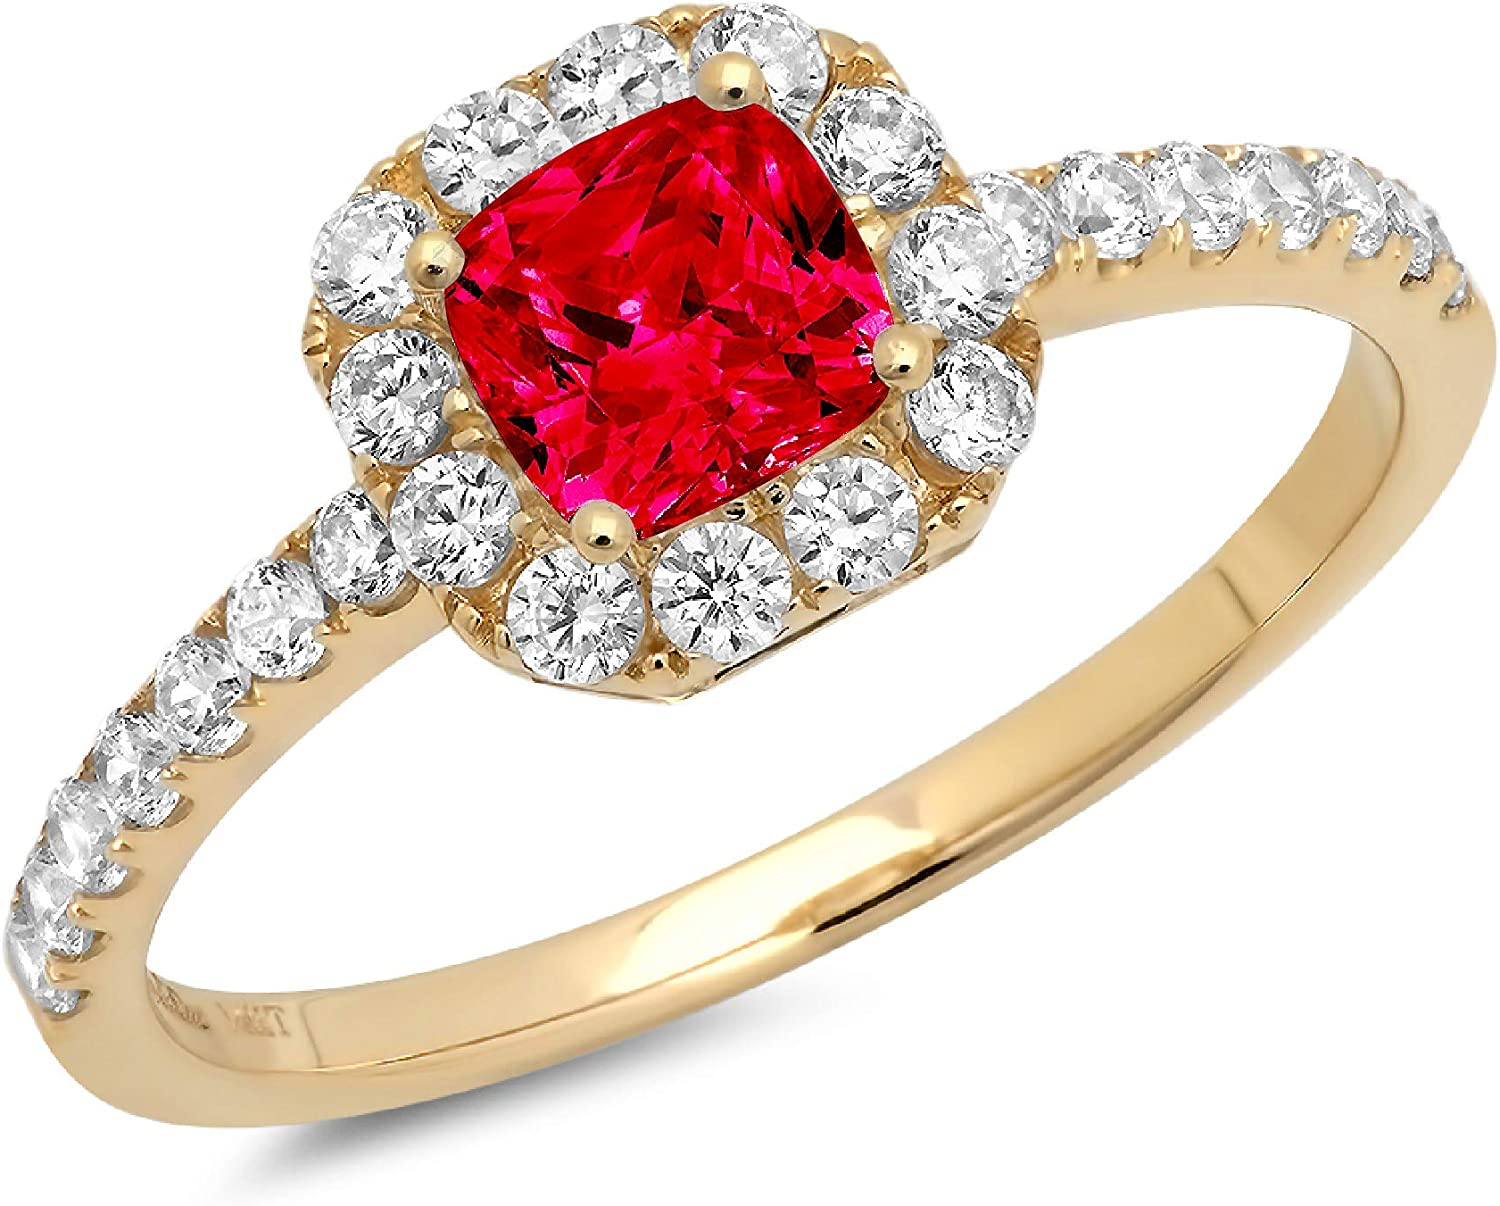 1.34ct Brilliant Princess Cut Solitaire with accent Flawless Ideal VVS1 Simulated CZ Red Ruby Engagement Promise Statement Anniversary Bridal Wedding Designer Ring 14k Yellow Gold